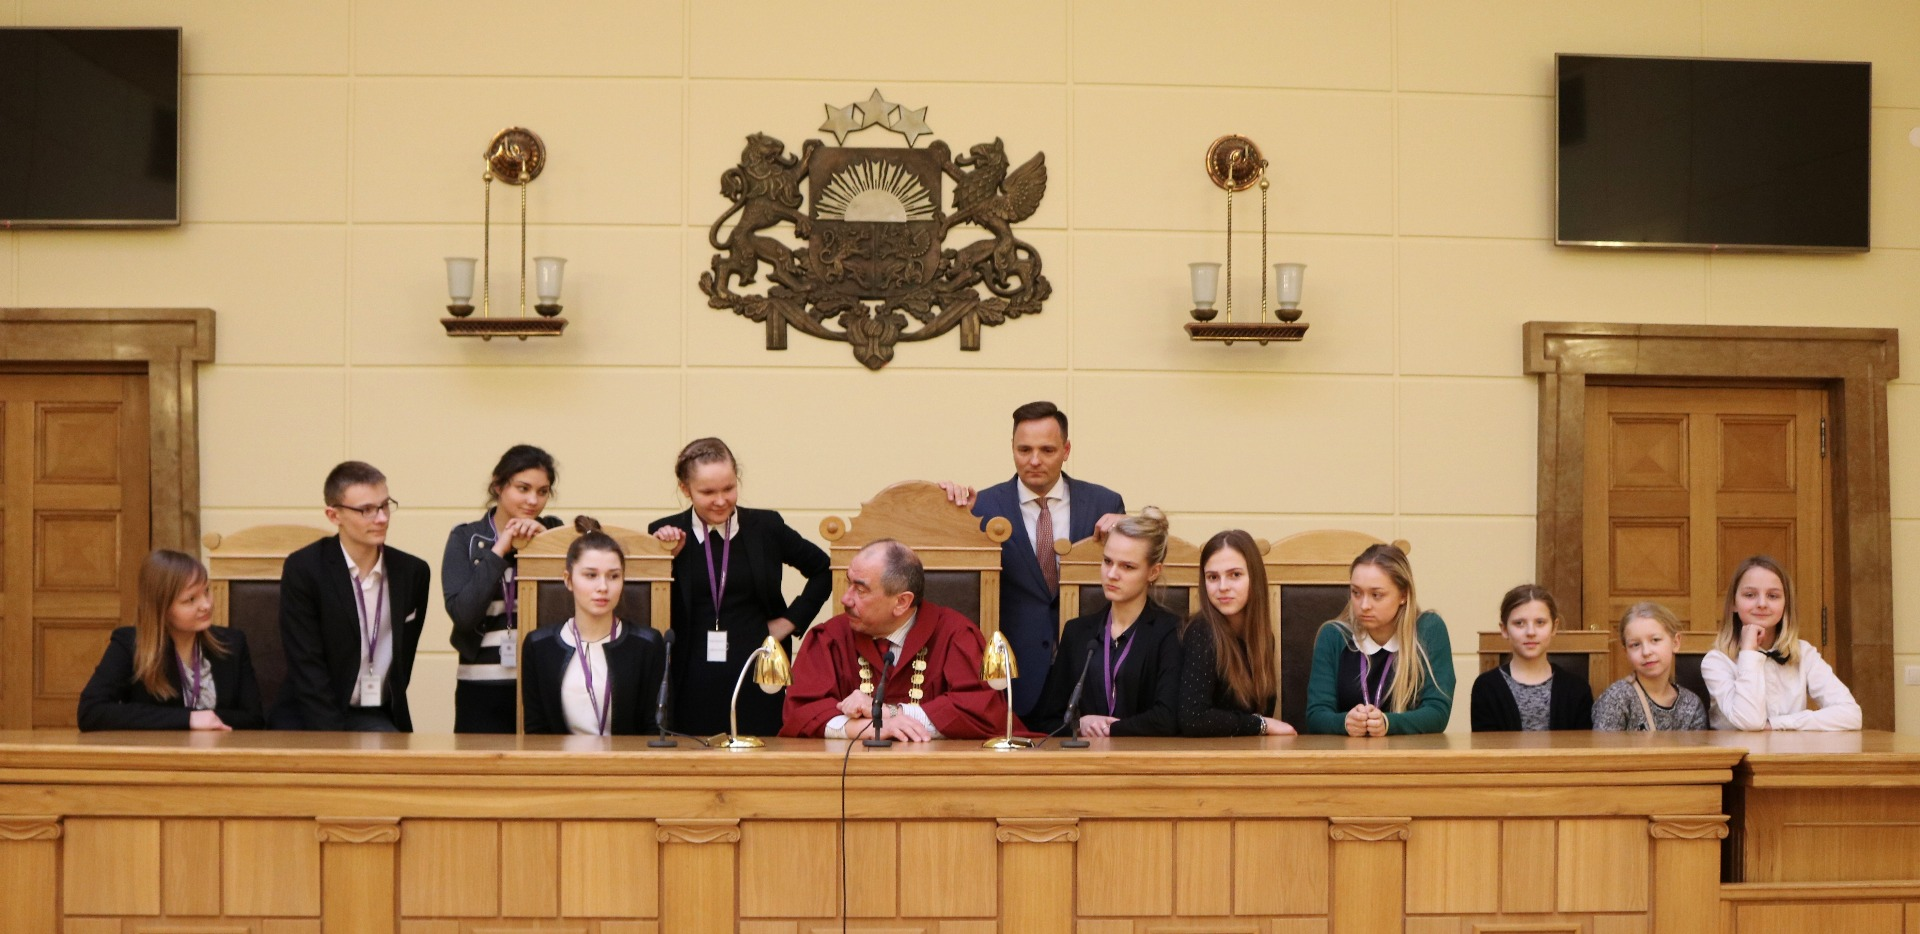 15.02.2017. On the Shadow Day the Supreme Court was visited by ten pupils from Skriveri, Cesvaine, Islice, Smiltene, Ventspils and Riga. They learned about the daily work routine of employees and judges of the Supreme Court. At the end of the day the Chief Justice of the Supreme Court Ivars Bickovics met with 'shadows' from the Supreme Court, as well as with 'shadows' from the Ministry of Justice (see photo).